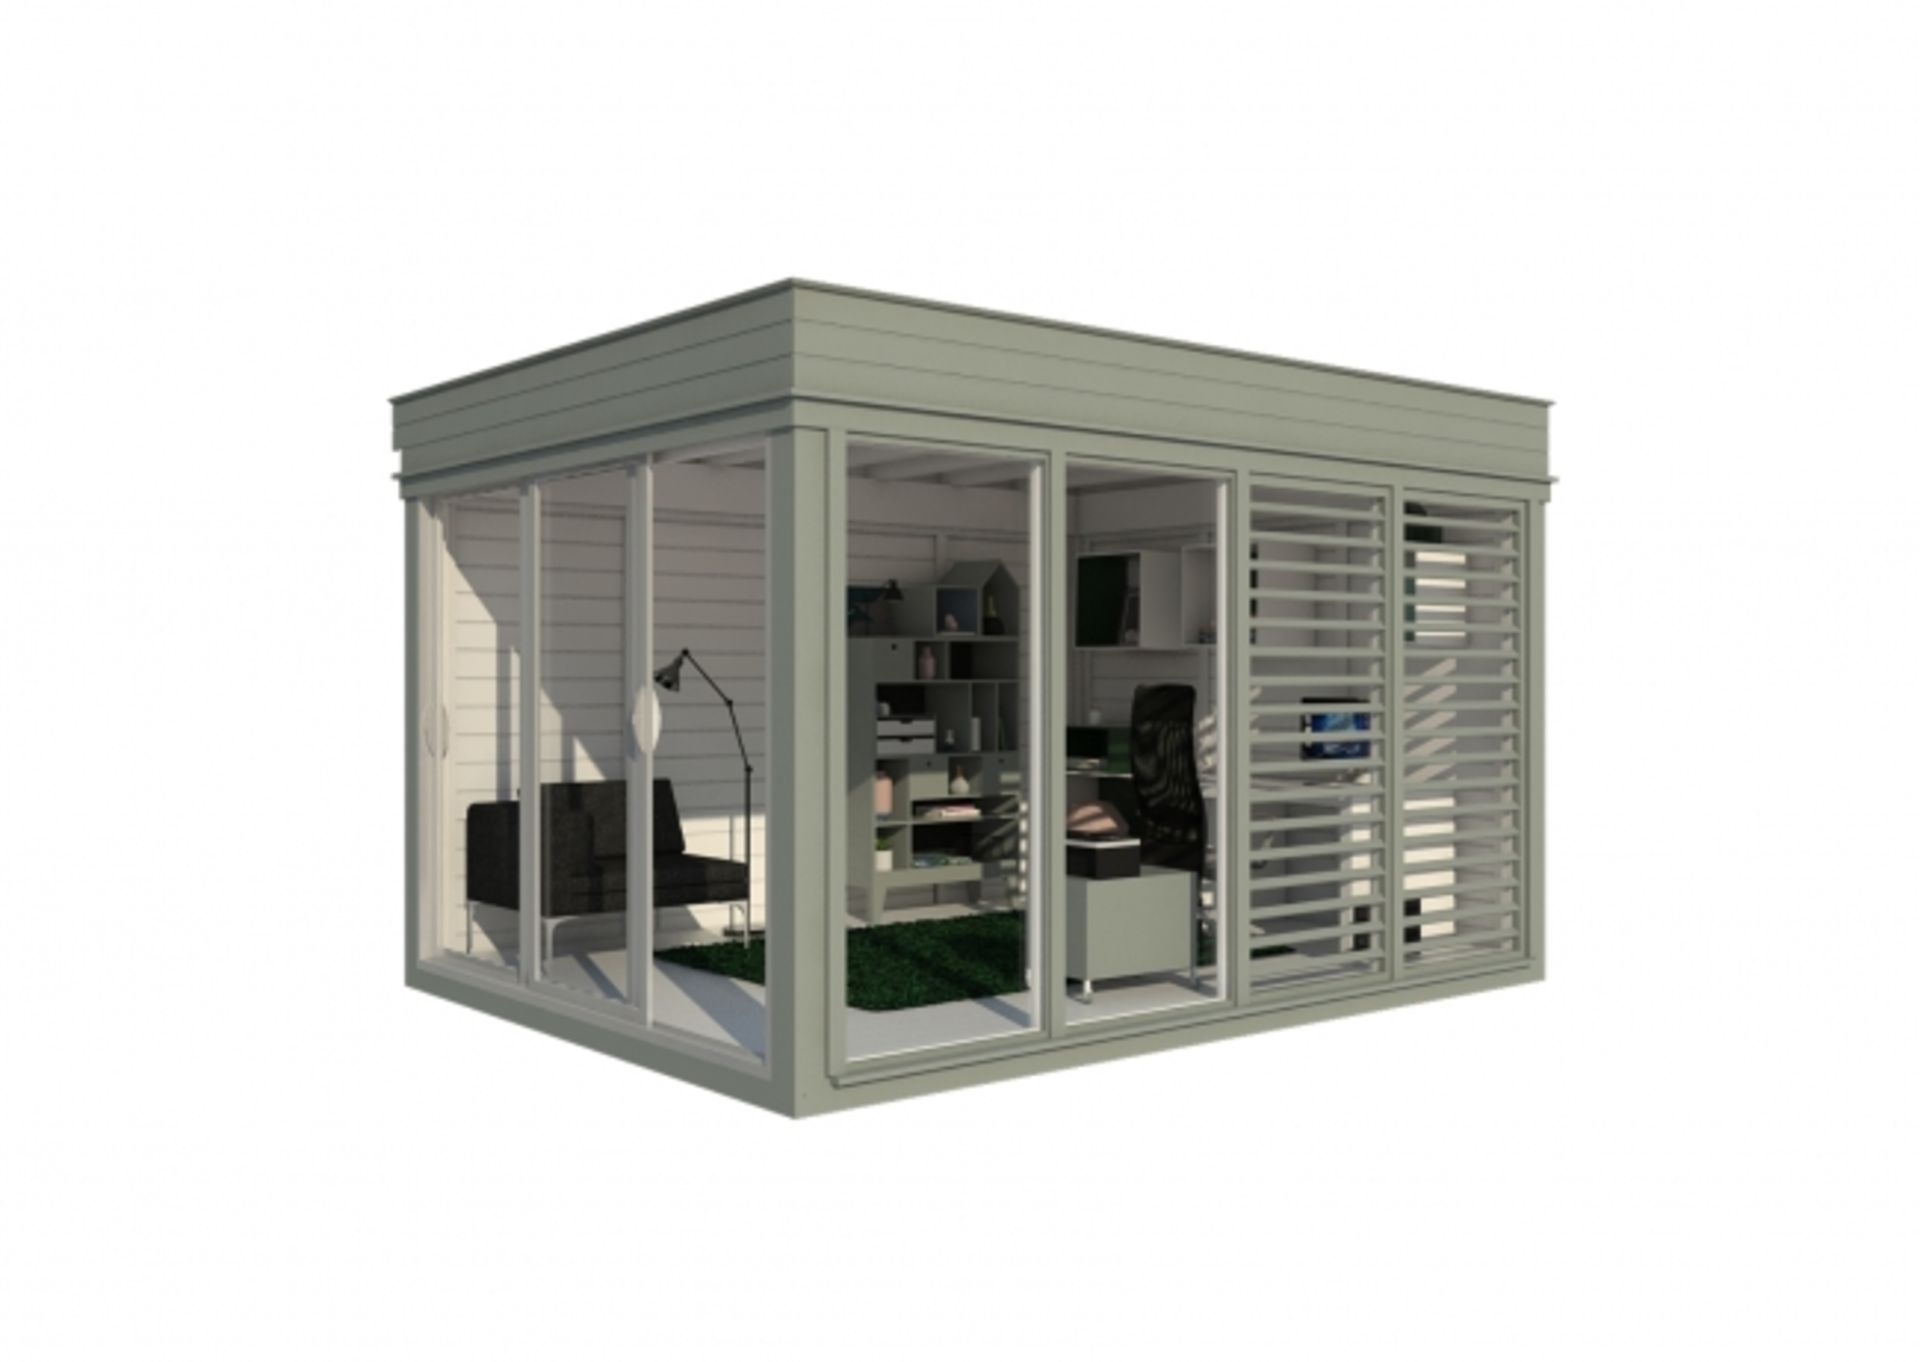 Lot 18023 - V Brand New Insulated 3m x 4m Garden Office Cube With Glass Sliding Doors - Sunscreen Sections -